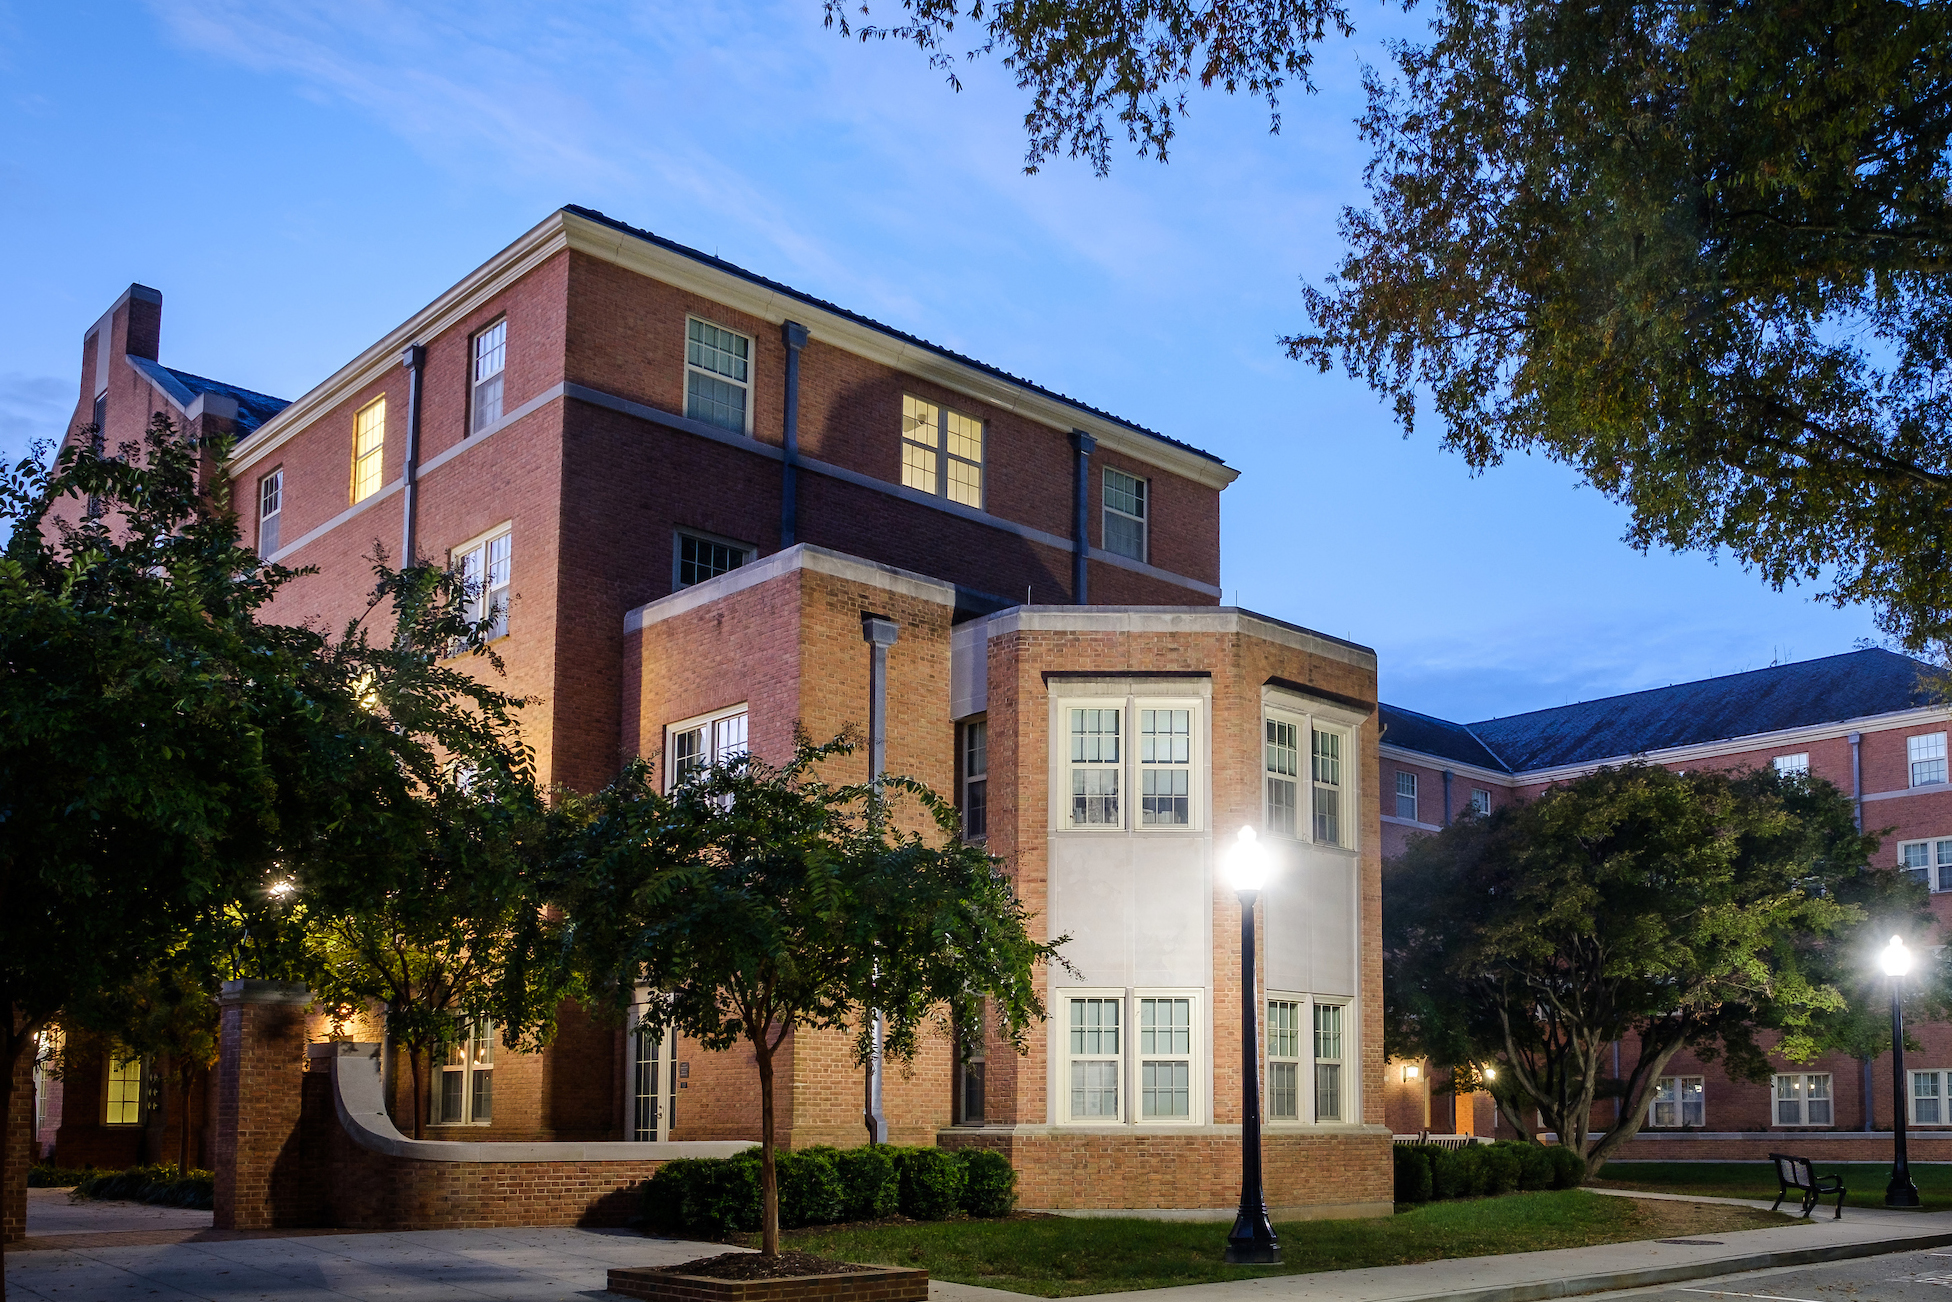 Exterior photo of South Residence Hall at dusk